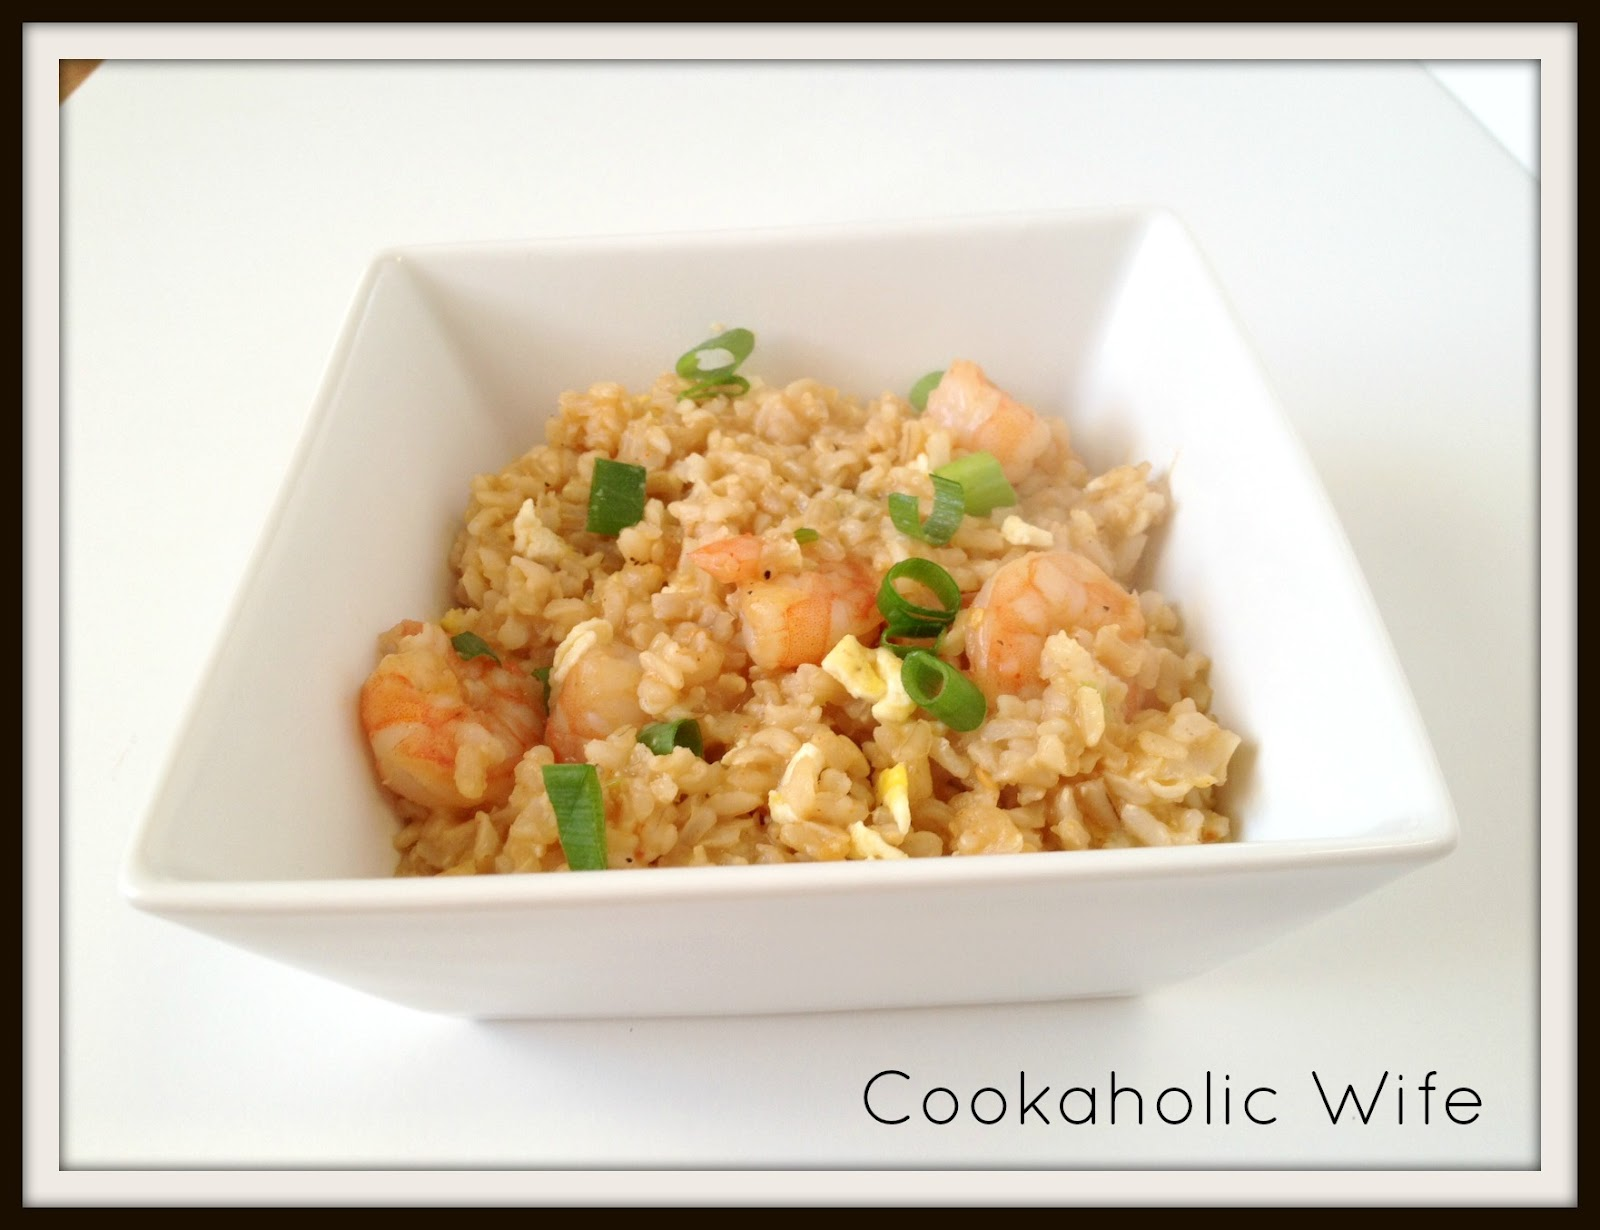 Cookaholic Wife: Spicy Shrimp Fried Rice